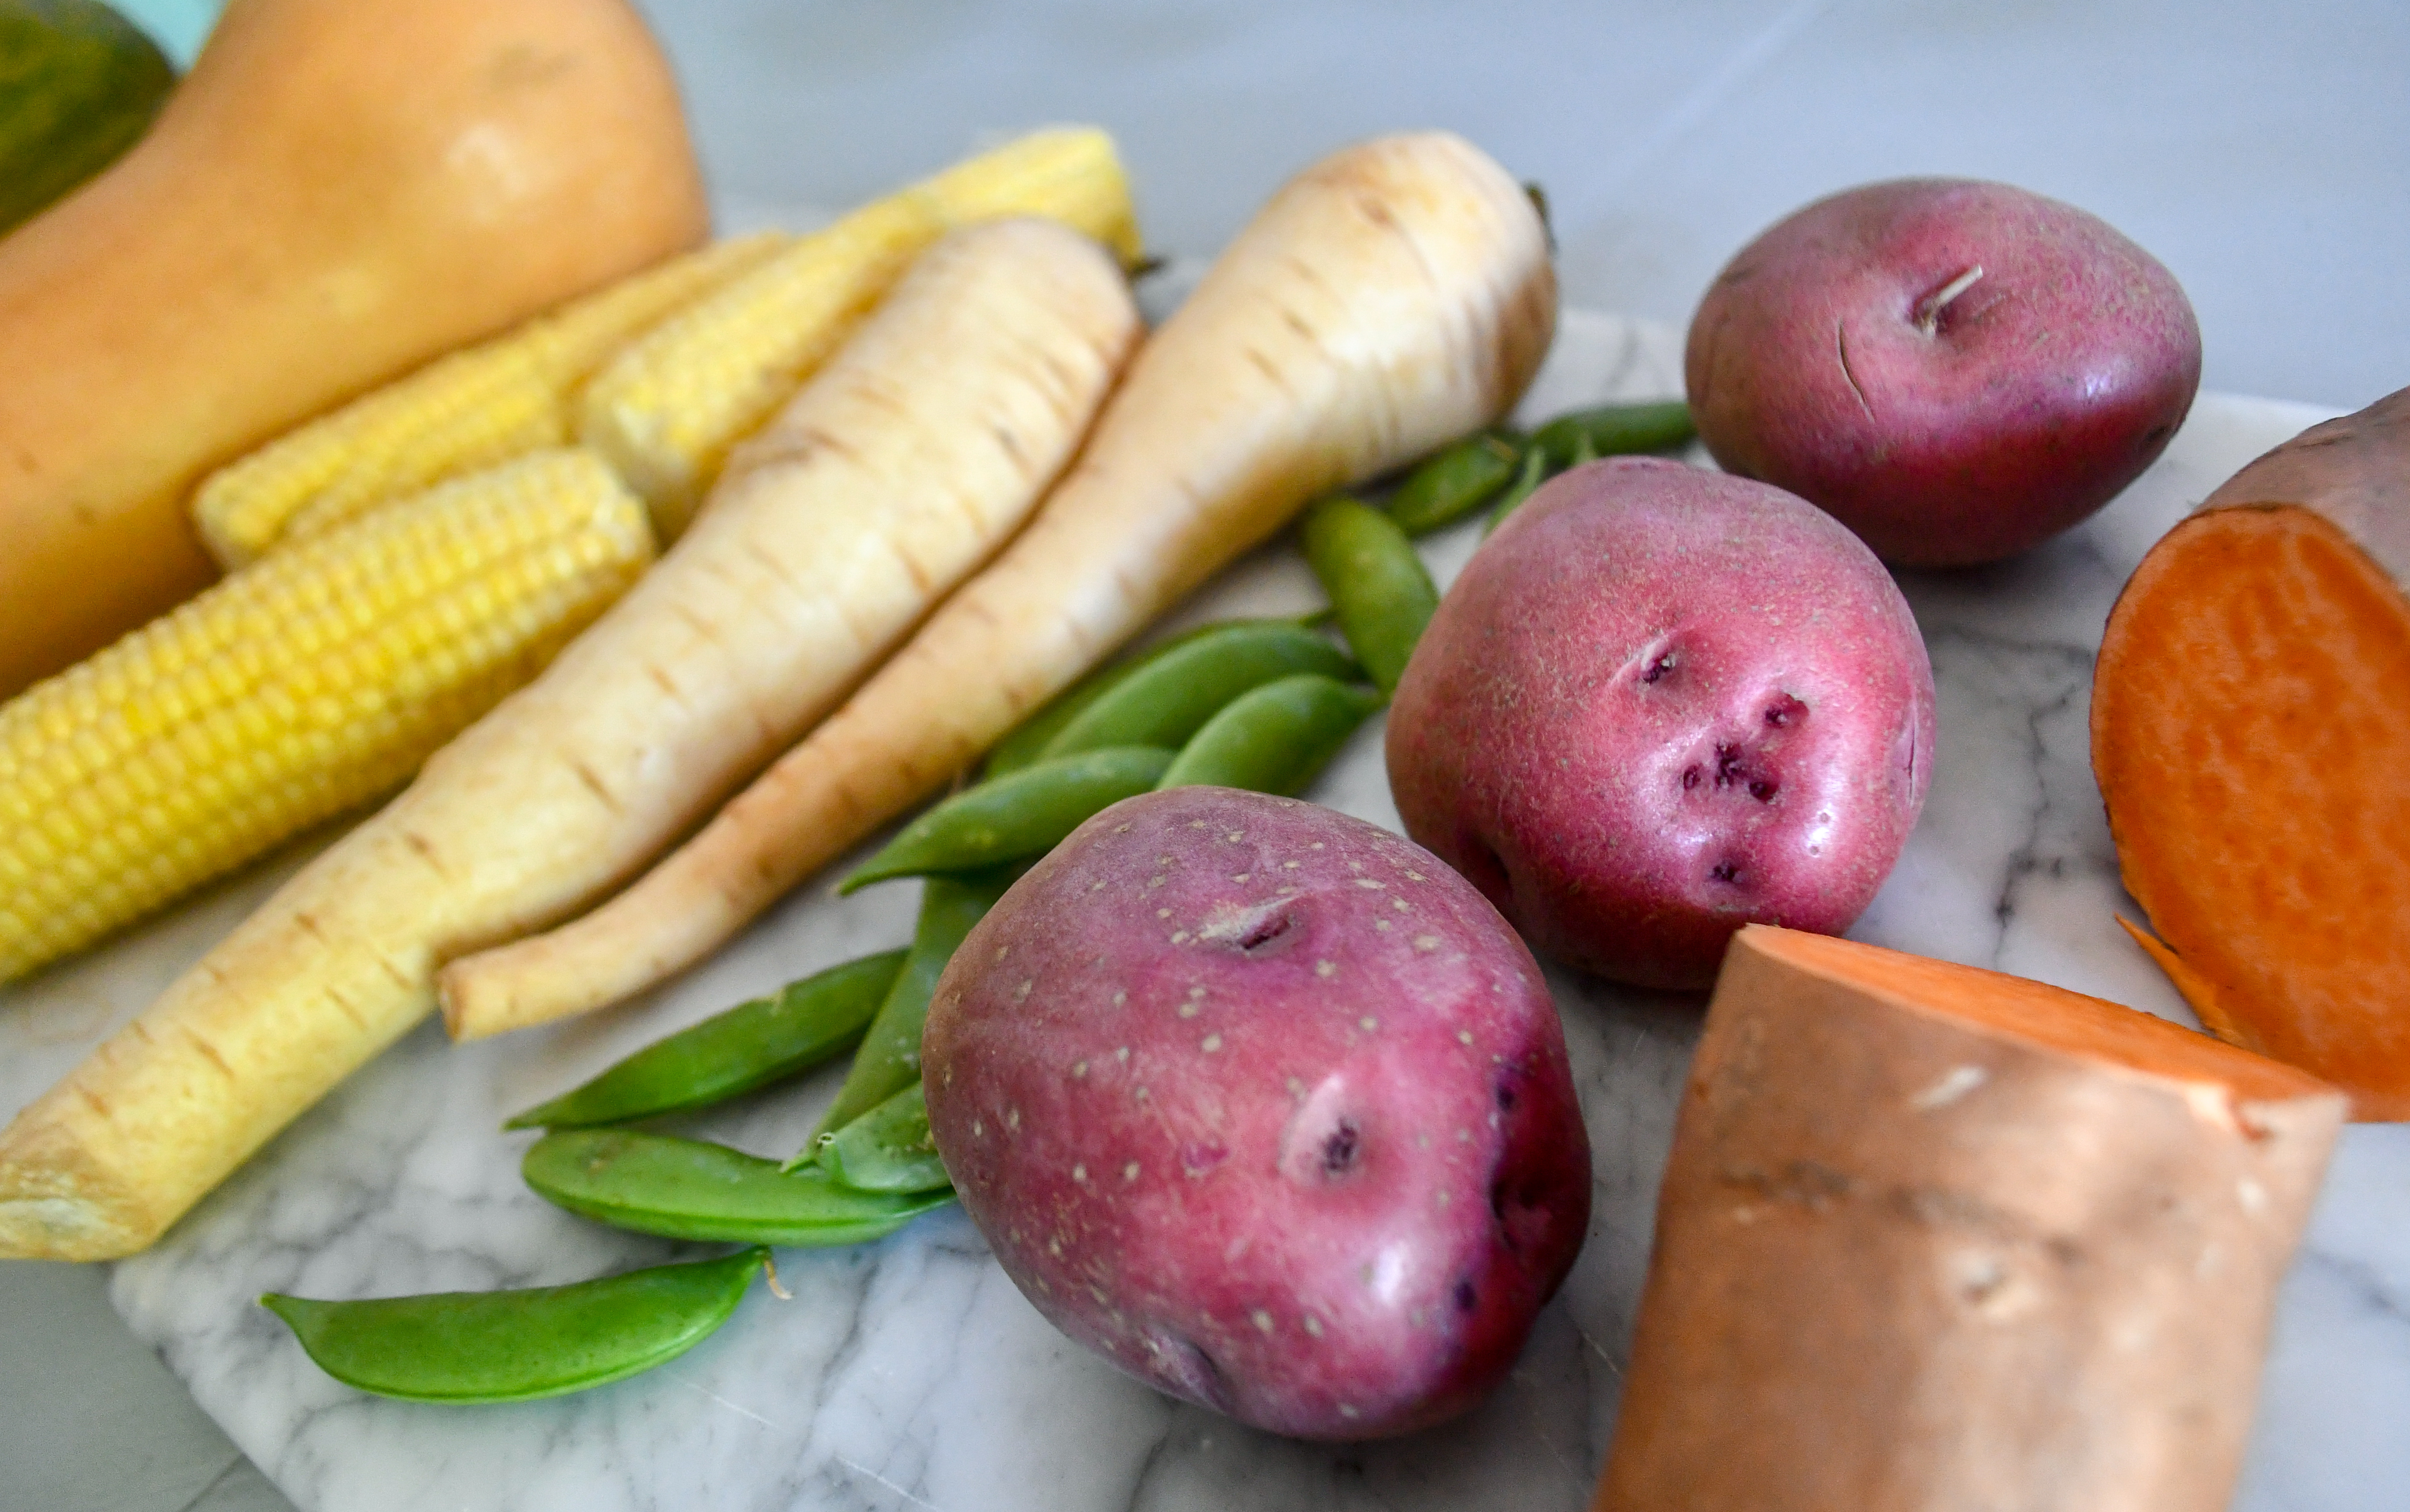 high carb vegetables not suitable for keto: corn, sweet potatoes, and peas